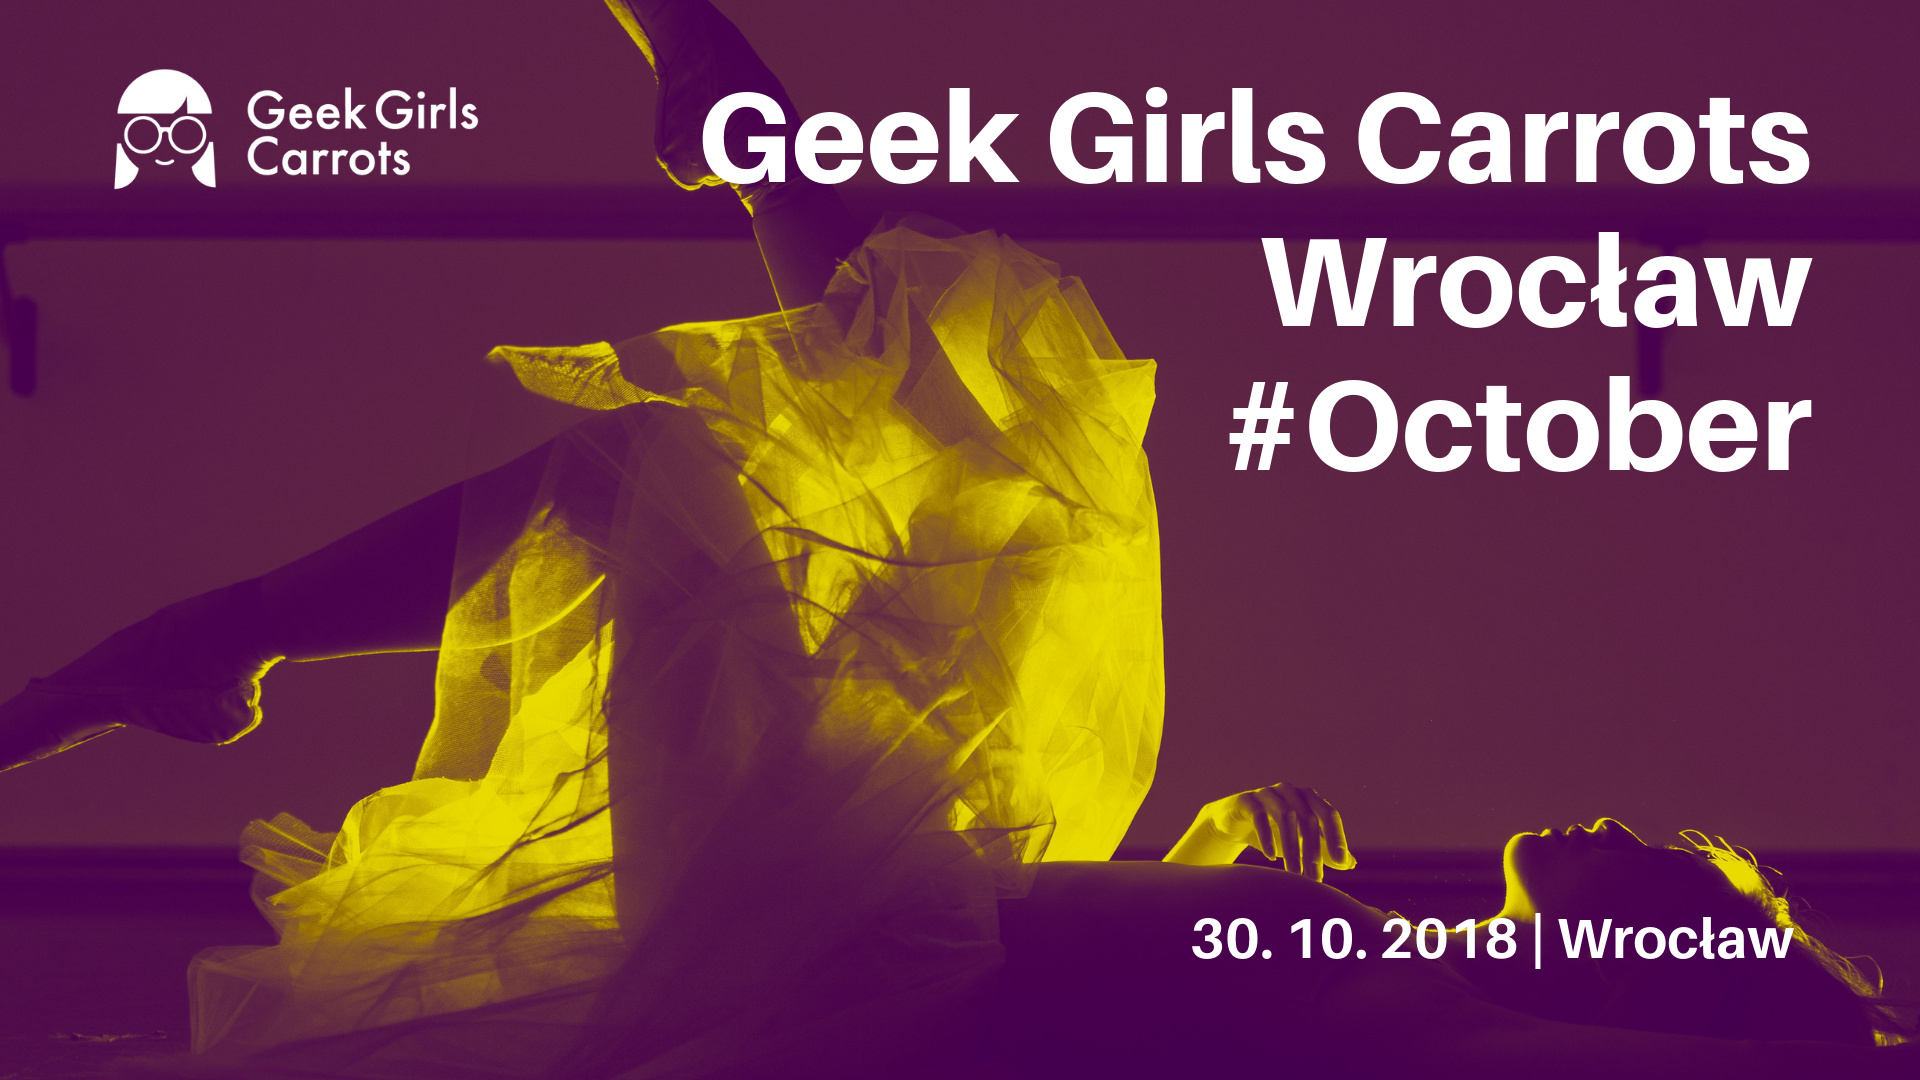 geek-girls-carrots-wroclaw-october